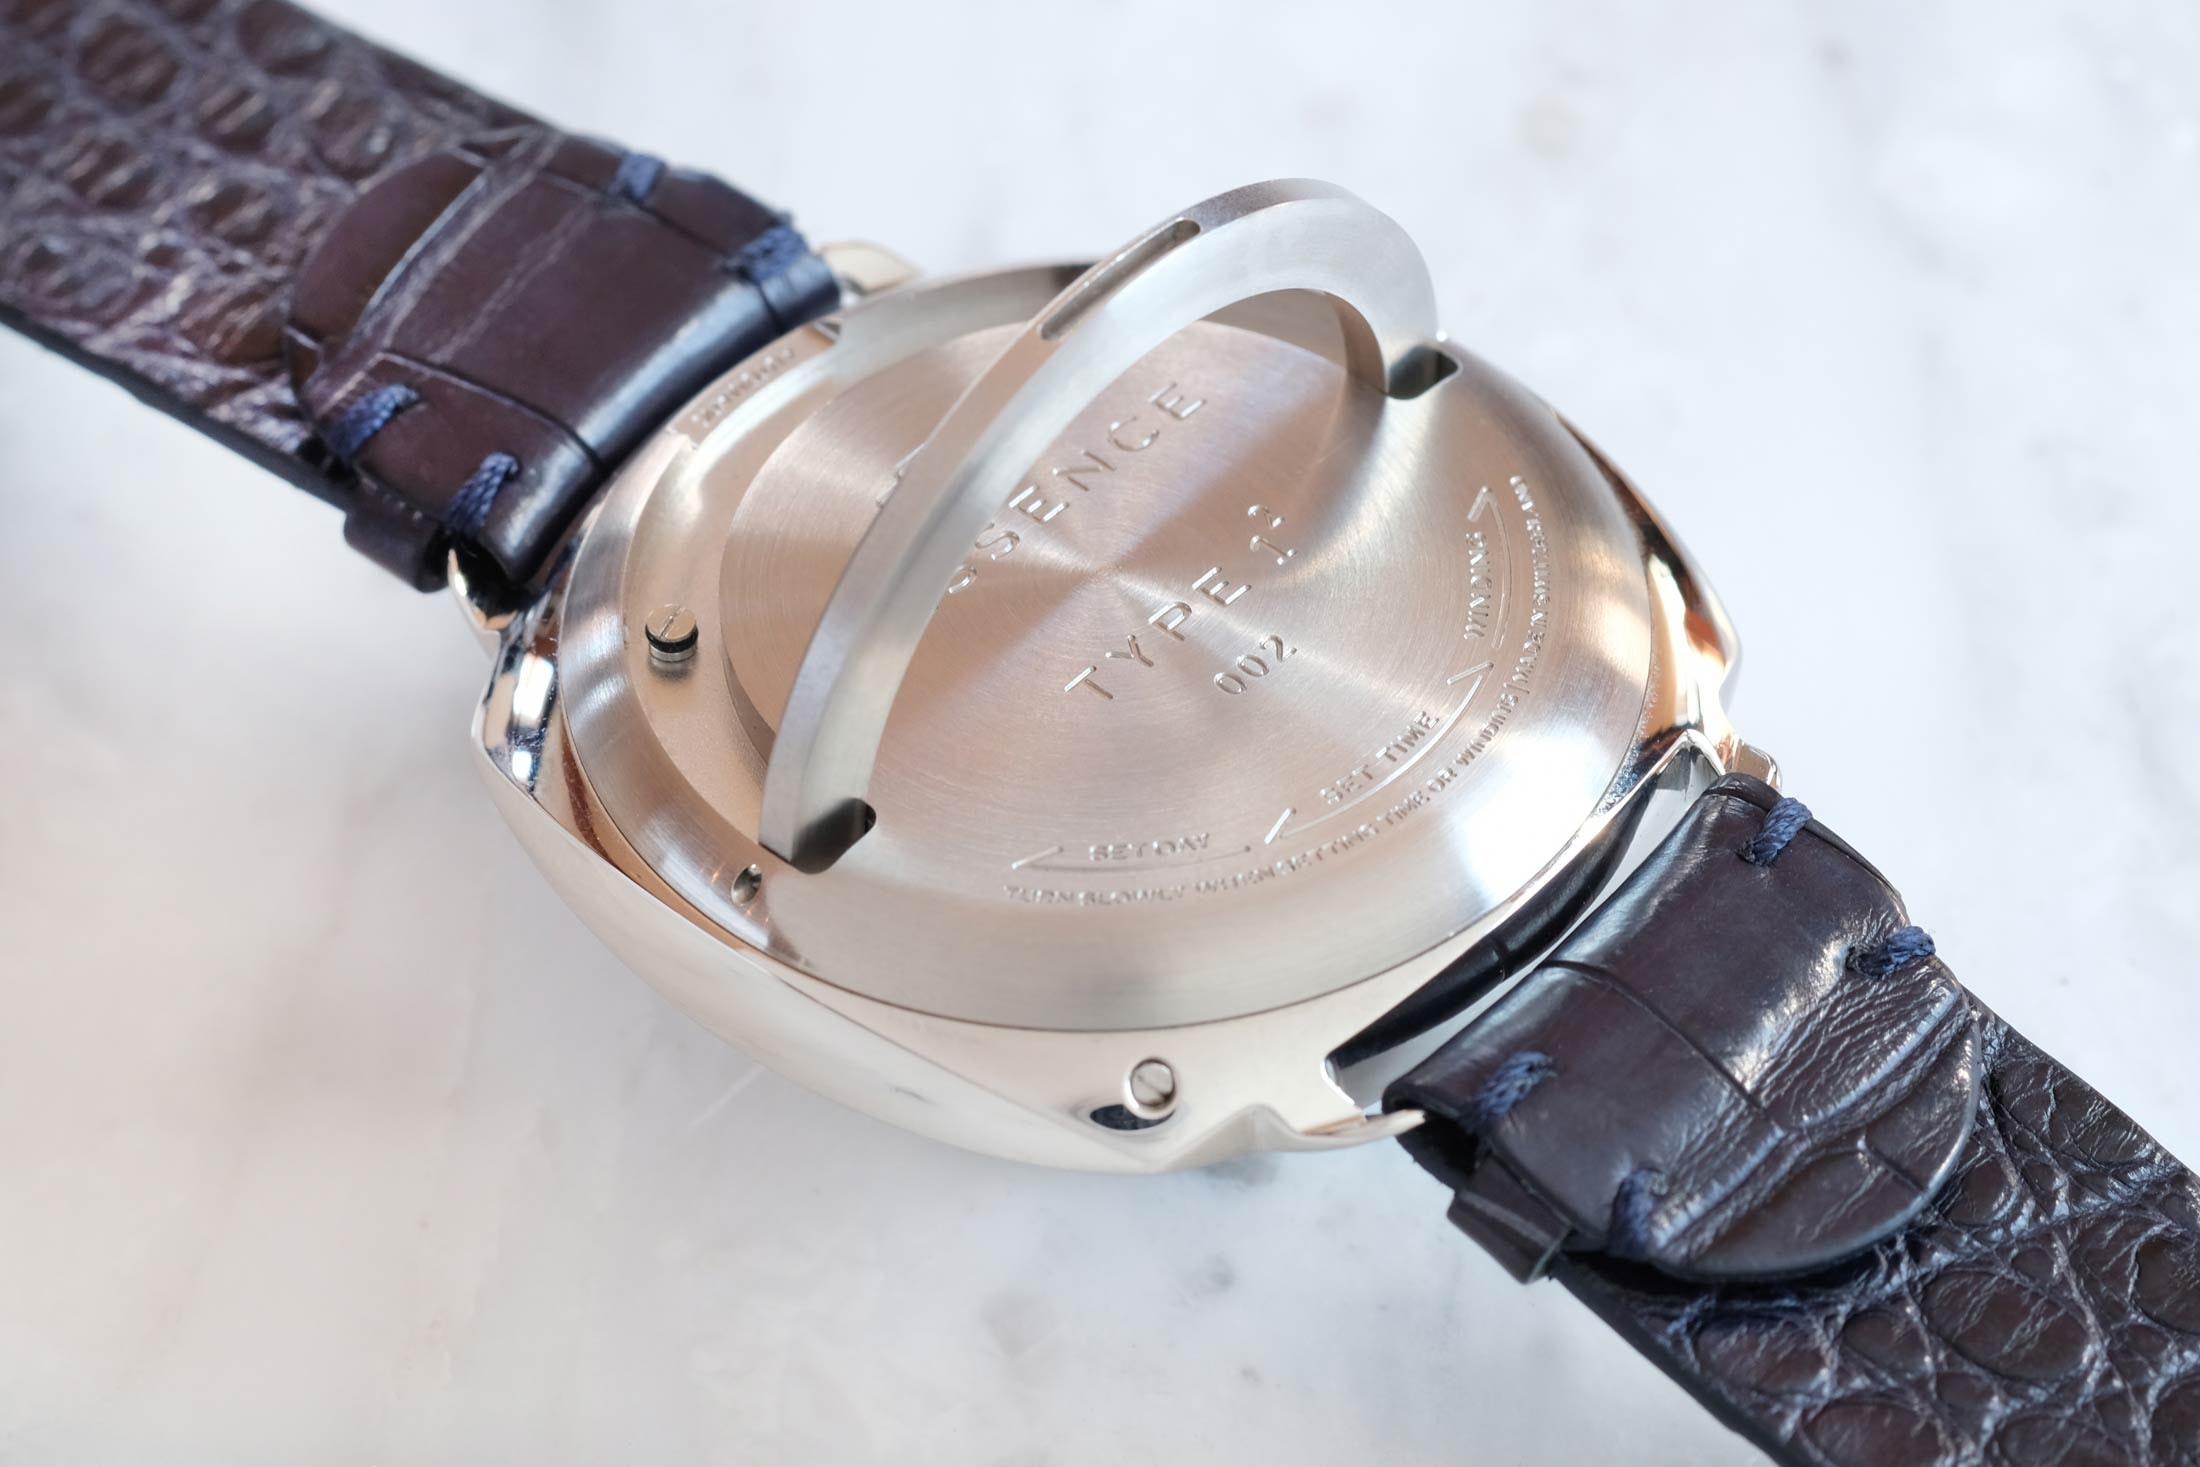 ressence type 1 squared winding key  Hands-On: The Ressence Type 1 Squared ressence squared 17